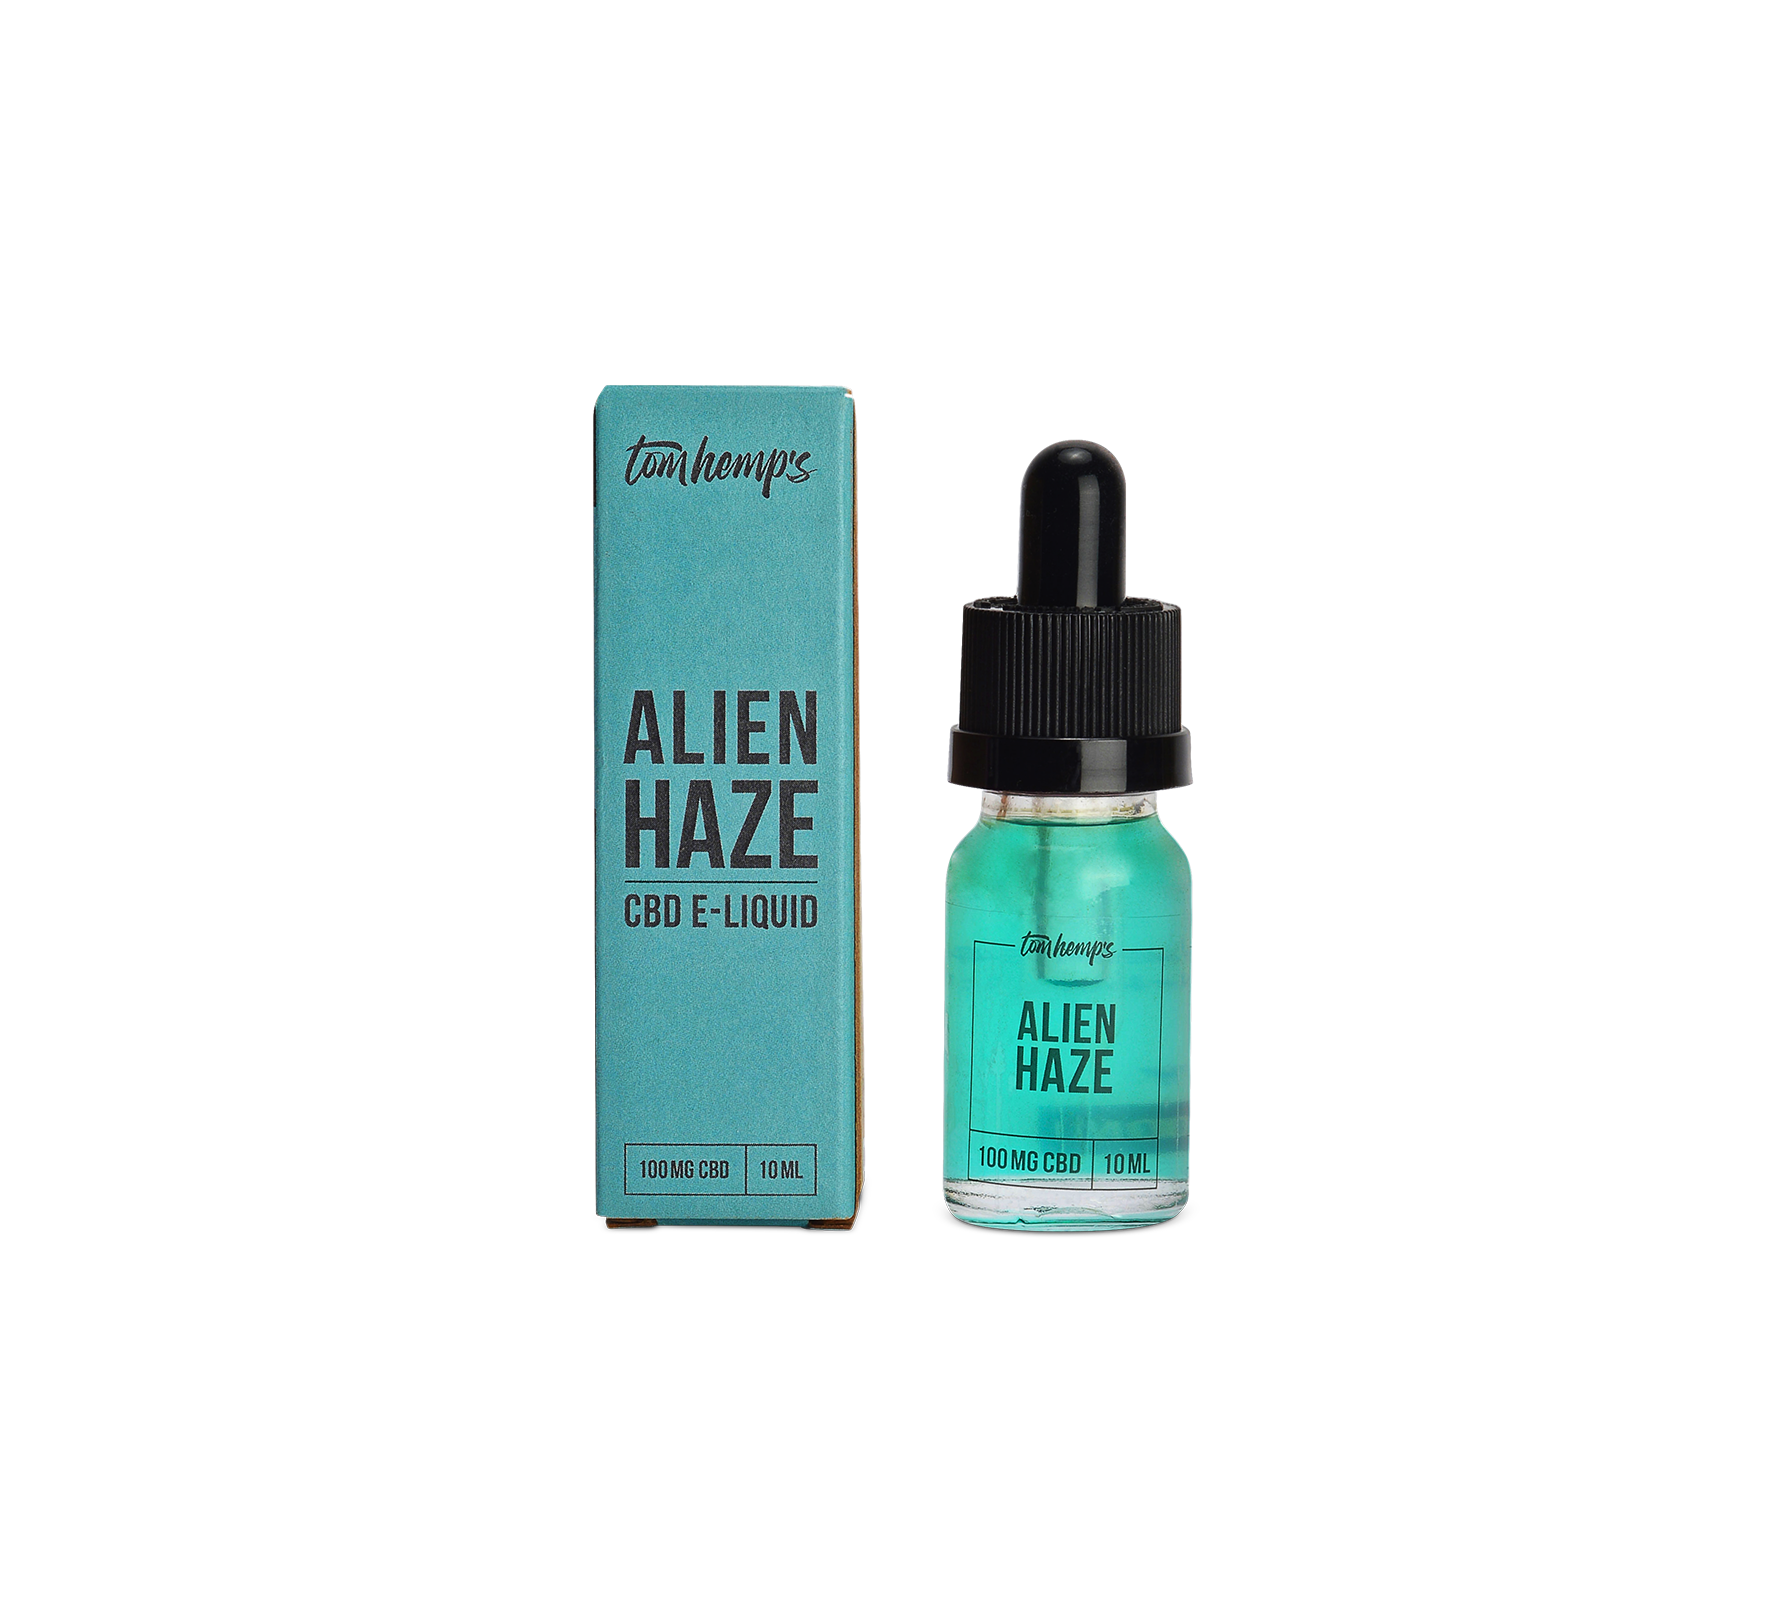 Tomhemps Cbd E Liquid Alienhaze Pipette Desktop Detail Hd 1780×1600